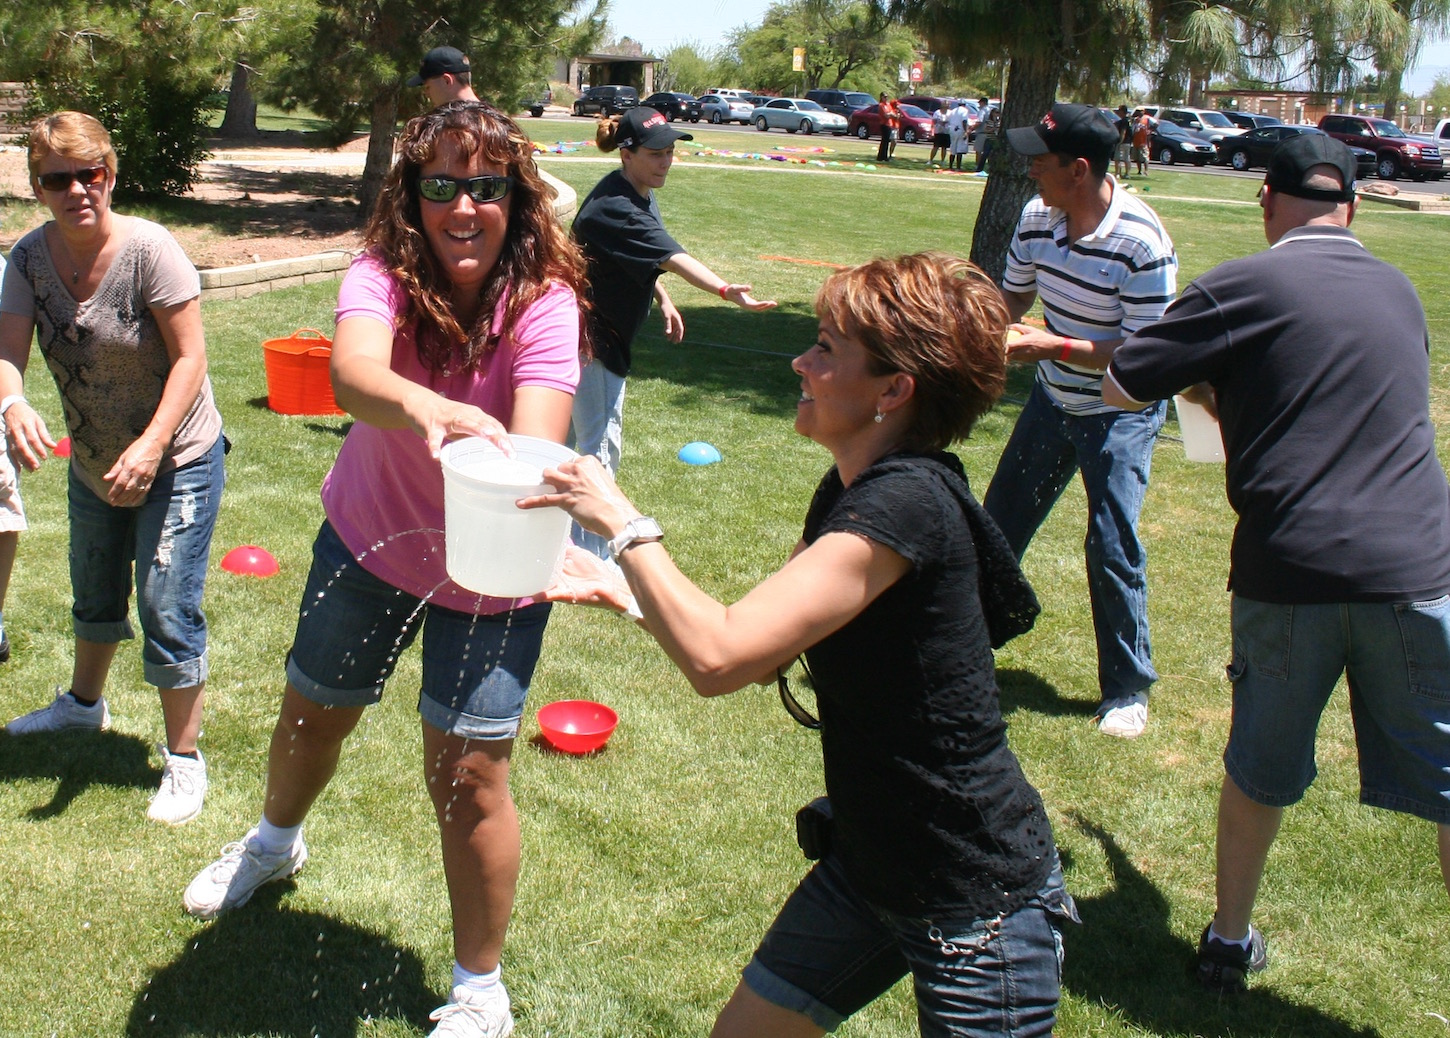 fun games designed for all ability levels